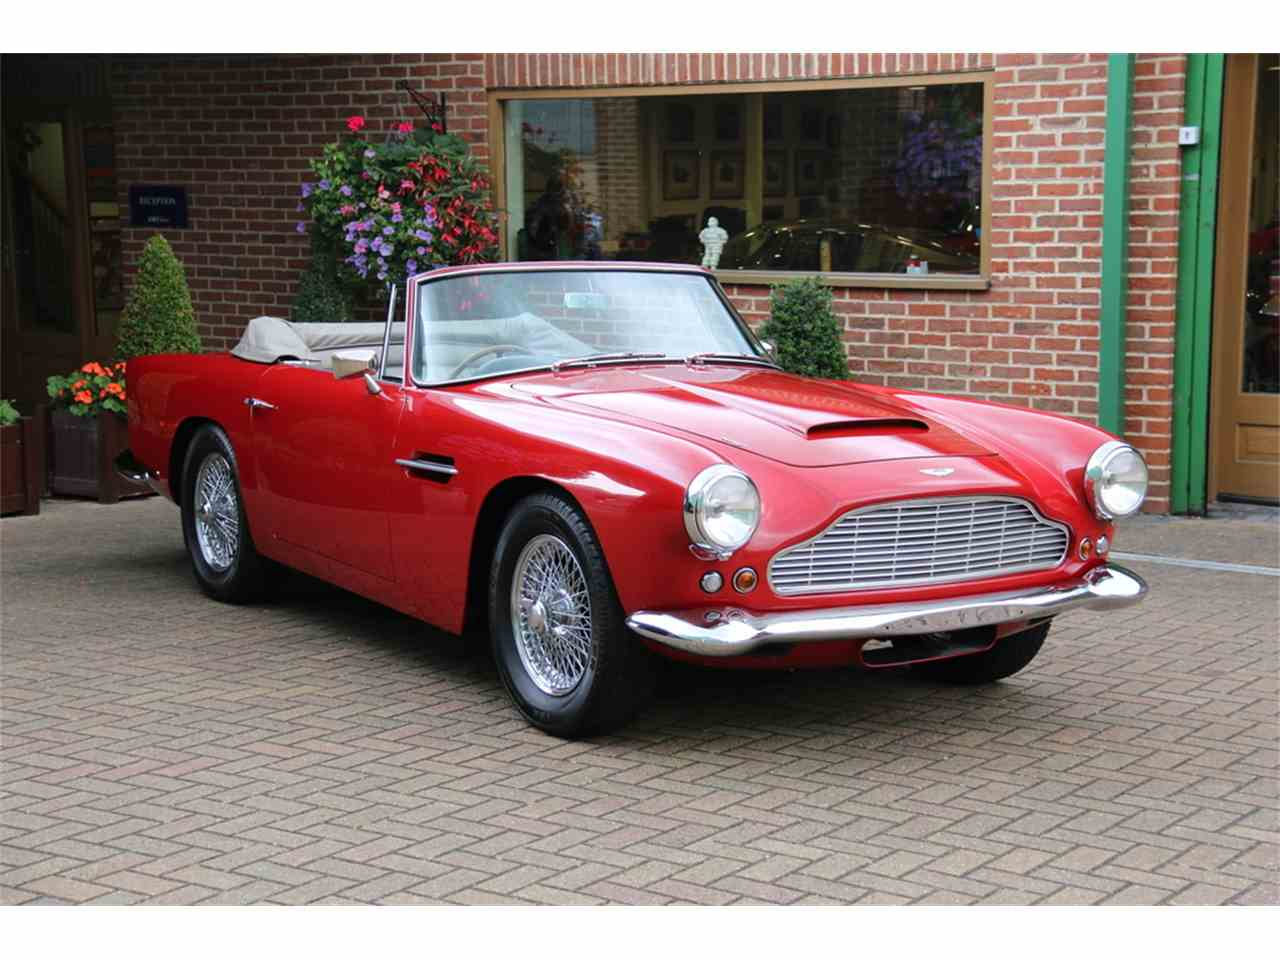 Large Picture of Classic '62 Aston Martin DB4 Series V Vantage located in Maldon, Essex  Offered by JD Classics LTD - LRZ6